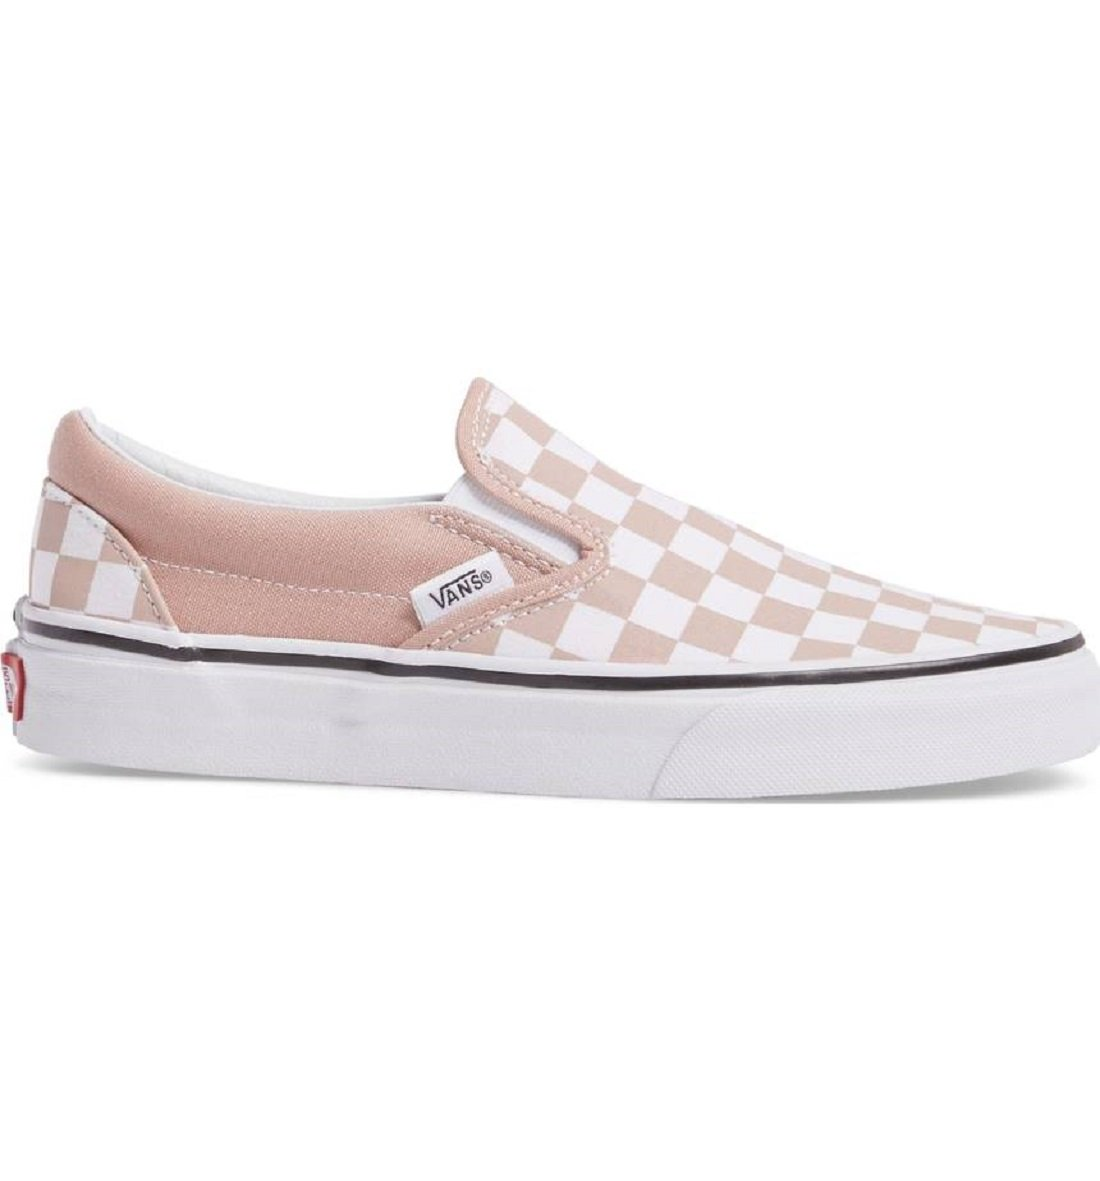 Vans Unisex Checkerboard Slip-On Mahogany Rose True White Sneaker - 5.5 by Vans